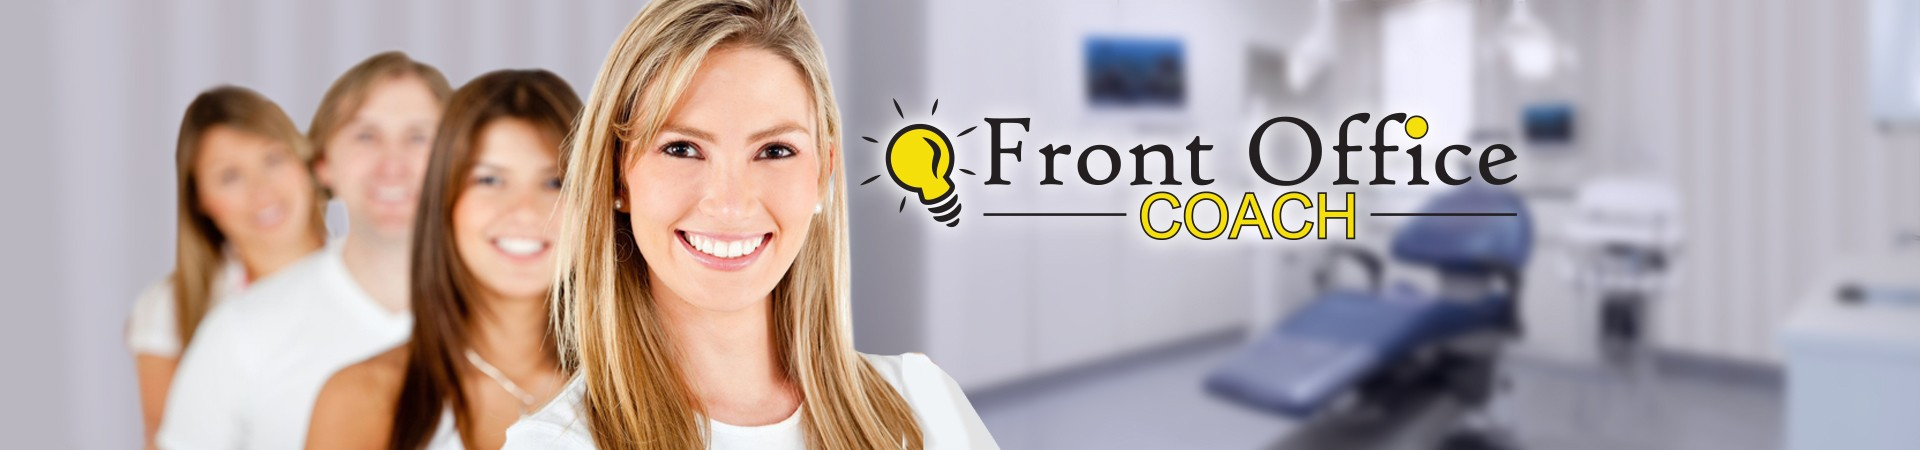 Front Office Coach - Dental Office Training and Total